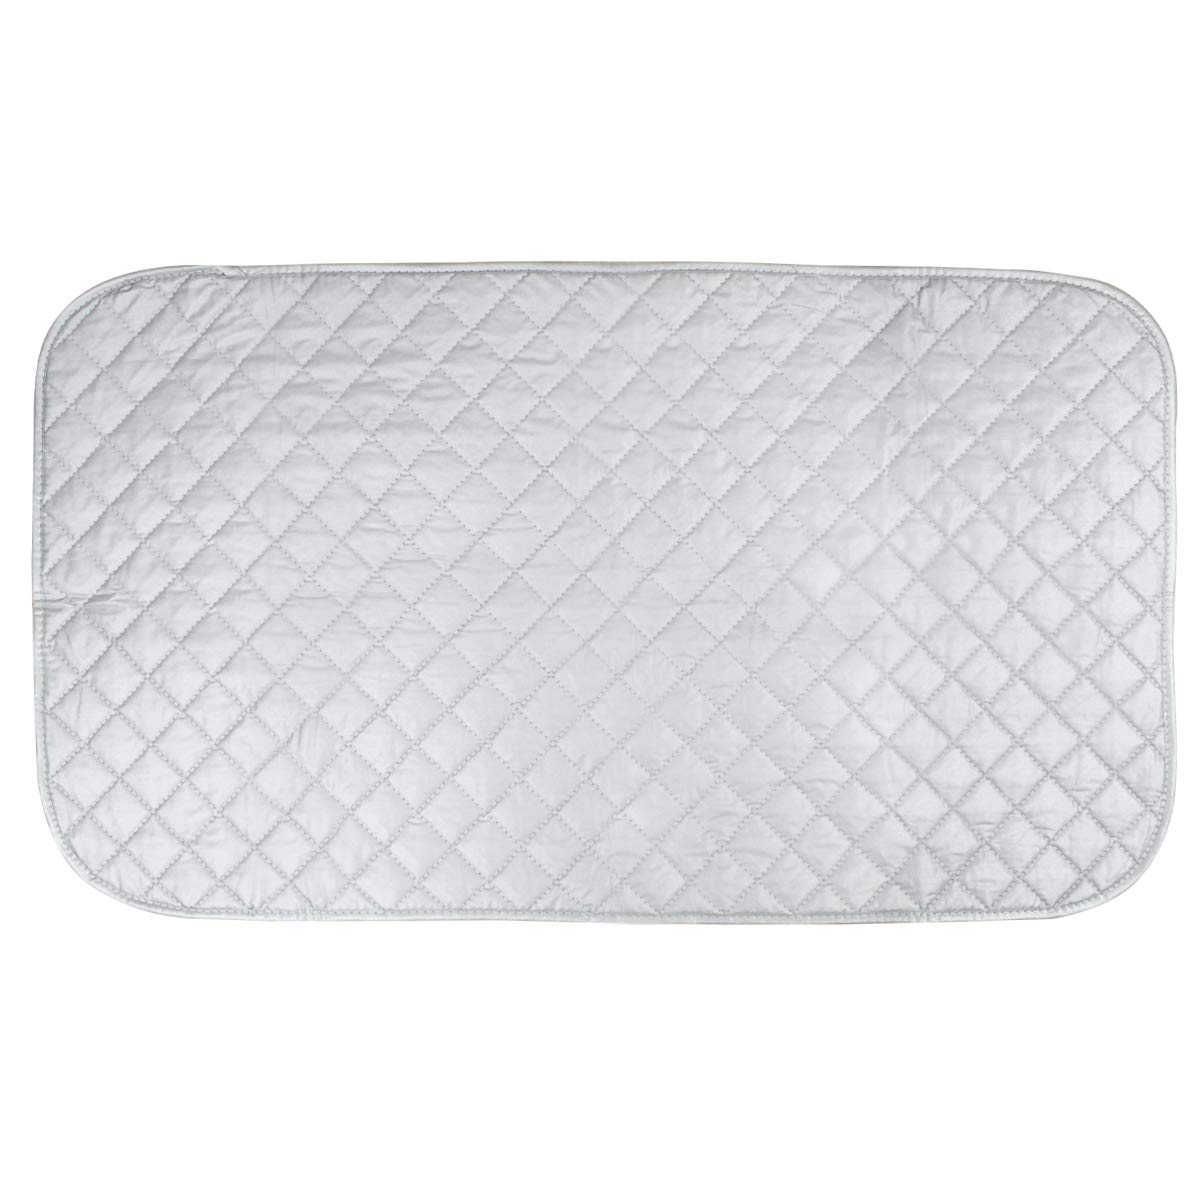 Fodlon Portable Travel Iron Mat Heat Resistant Ironing Blanket Laundry Pad Quilted Washer Dryer Pad Ironing Board Covers for Table Top